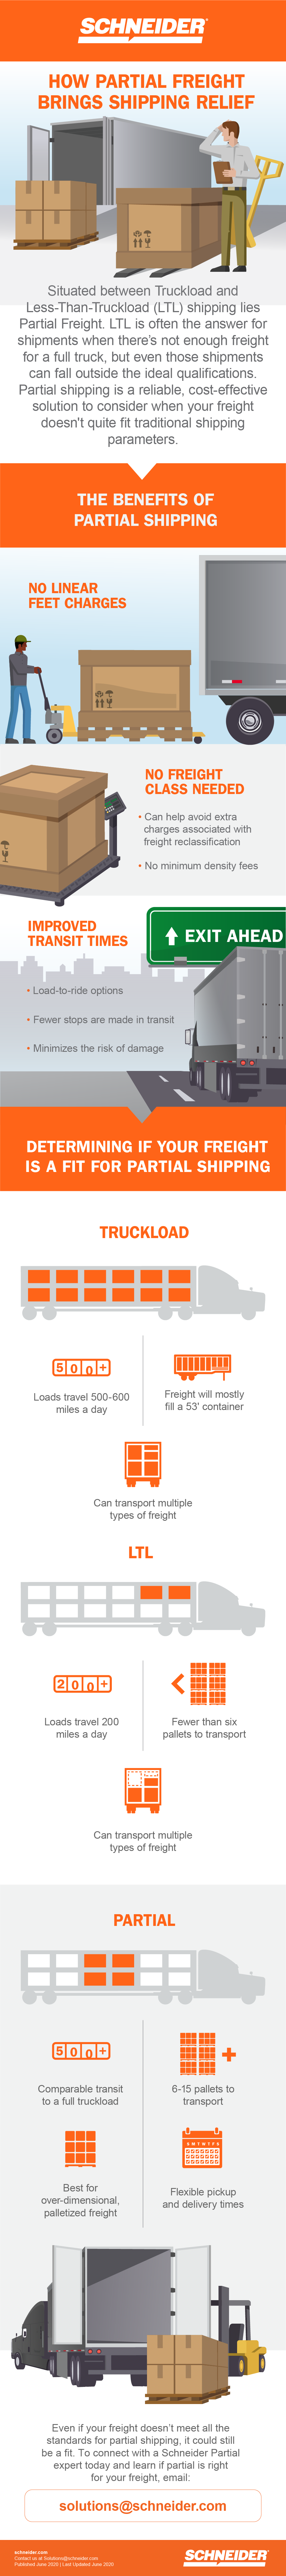 Infographic which demonstrates Partial Freight Shipping -- situated between Truckload shipping and Less-Than-Truckload (LTL) shipping